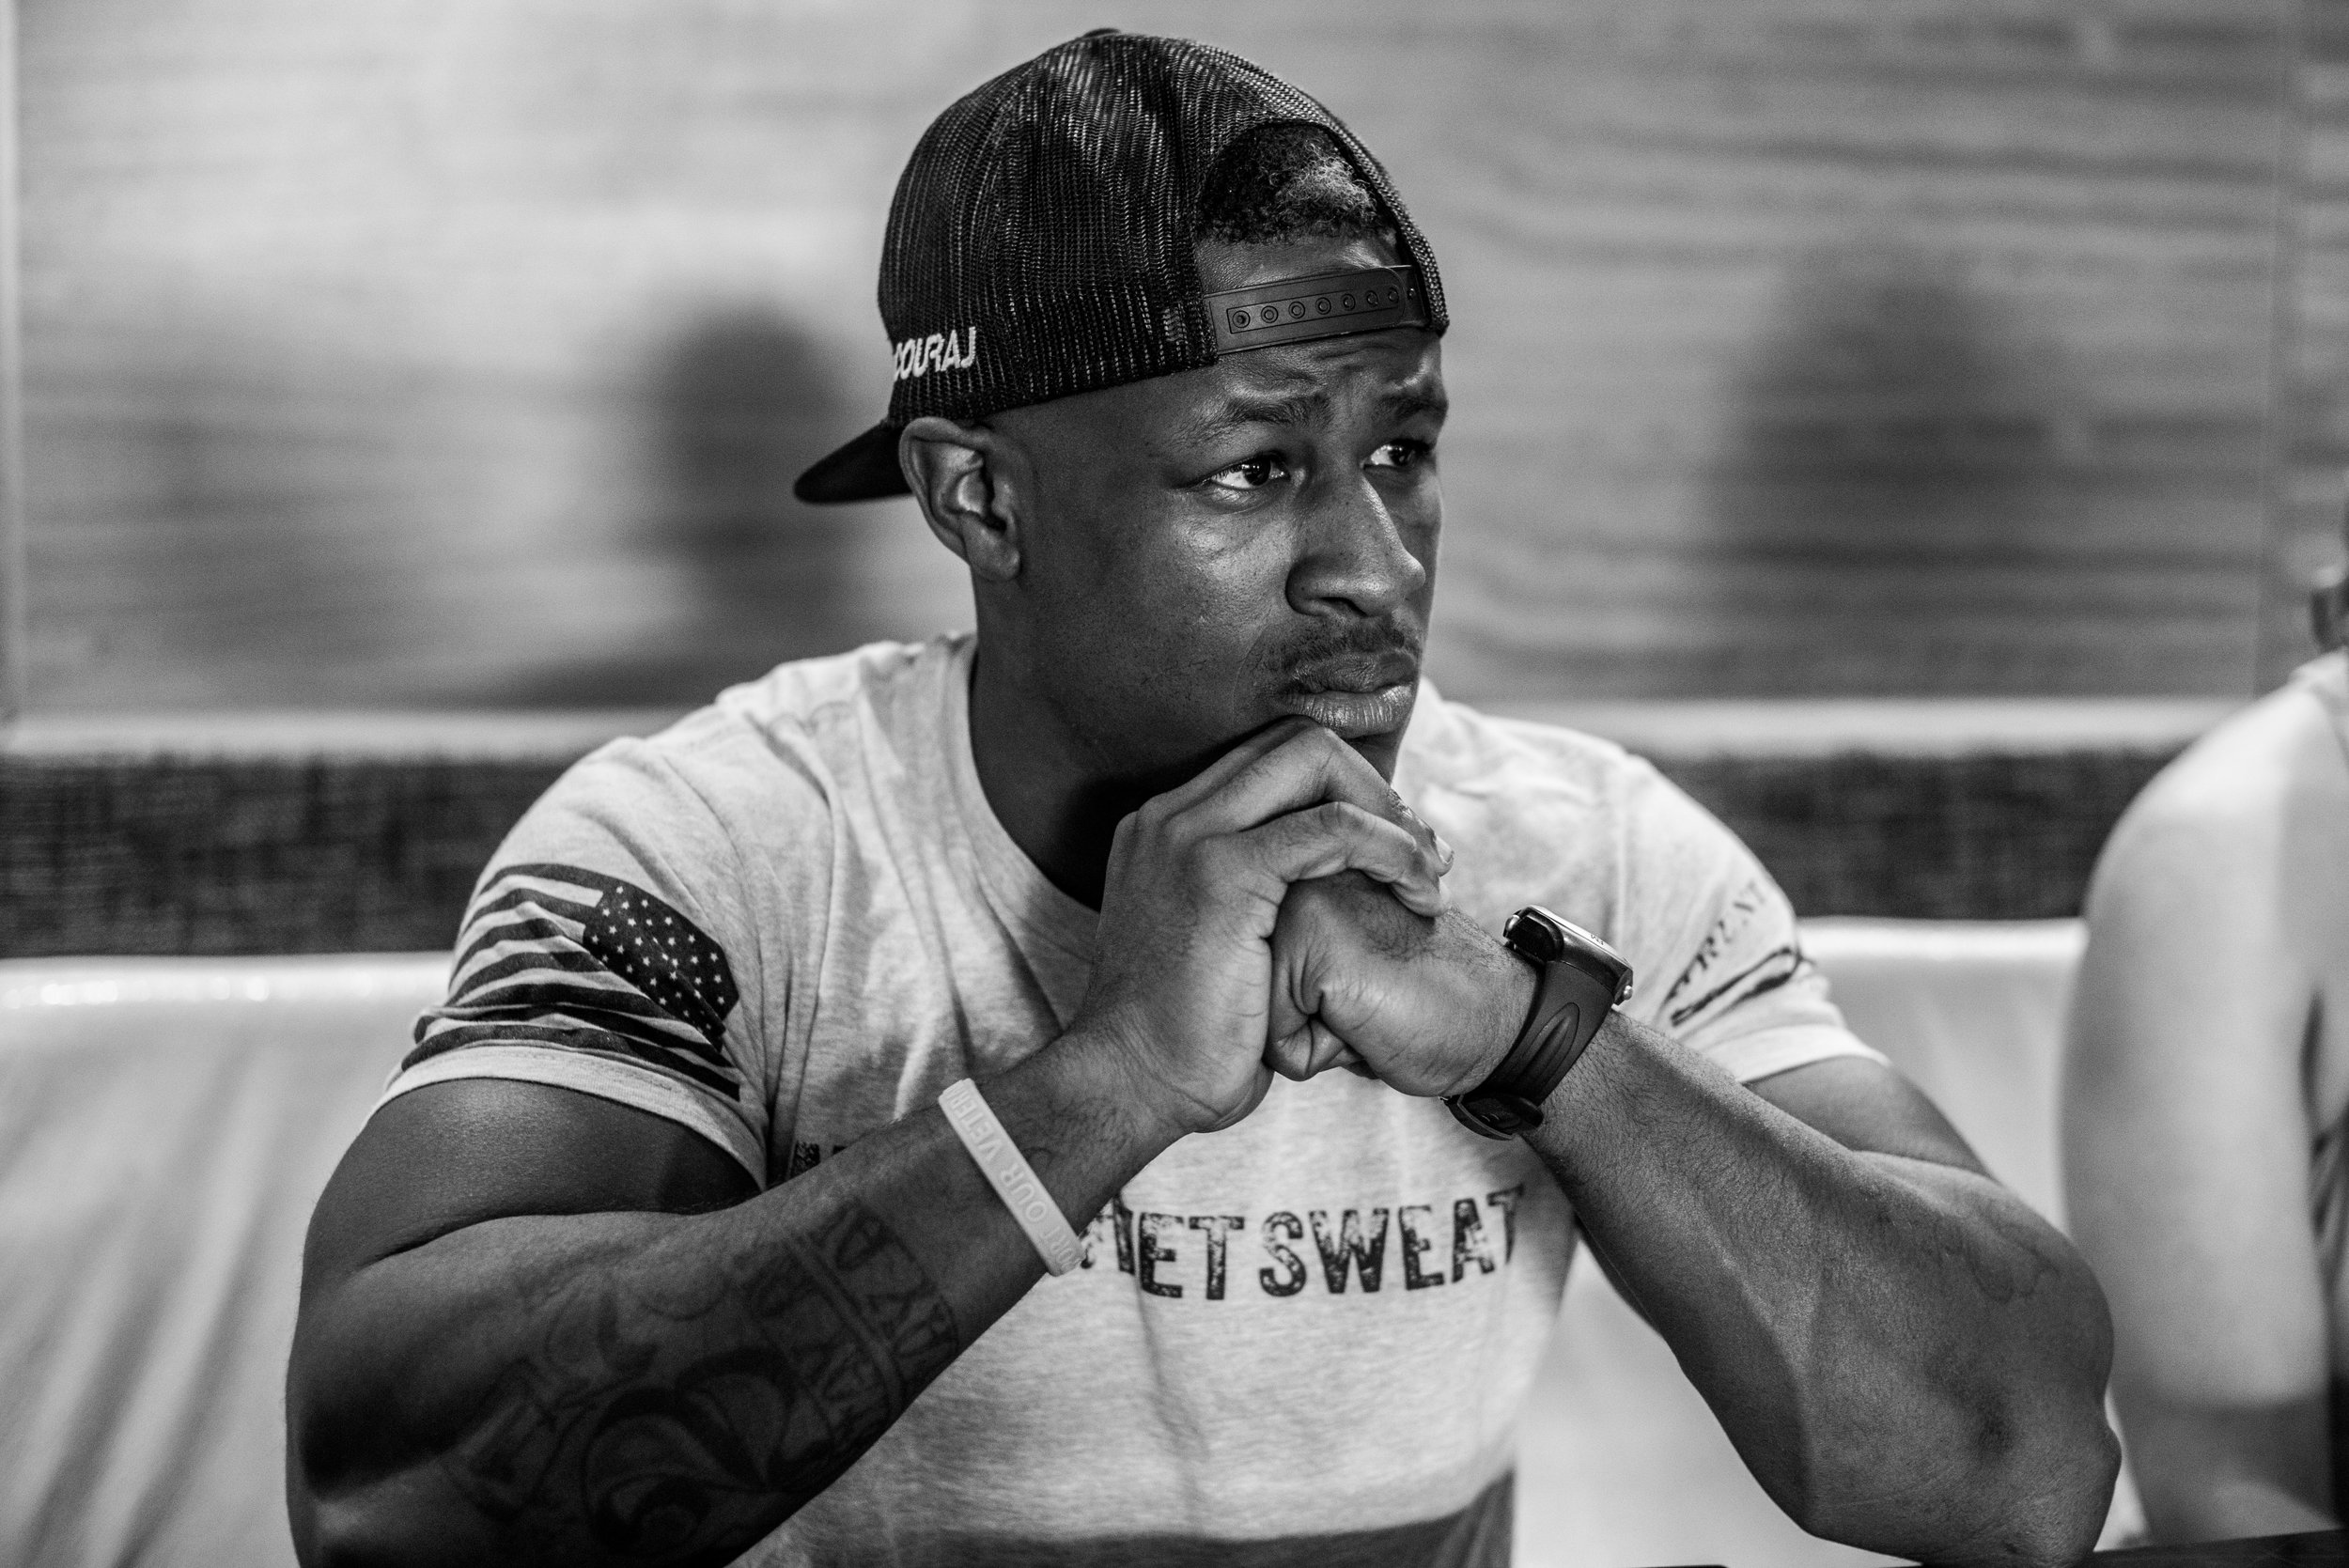 Justin sits in a meeting with an even coordinator for his annual MAVS Classic, which highlights veterans in the bodybuilding and physique industries.